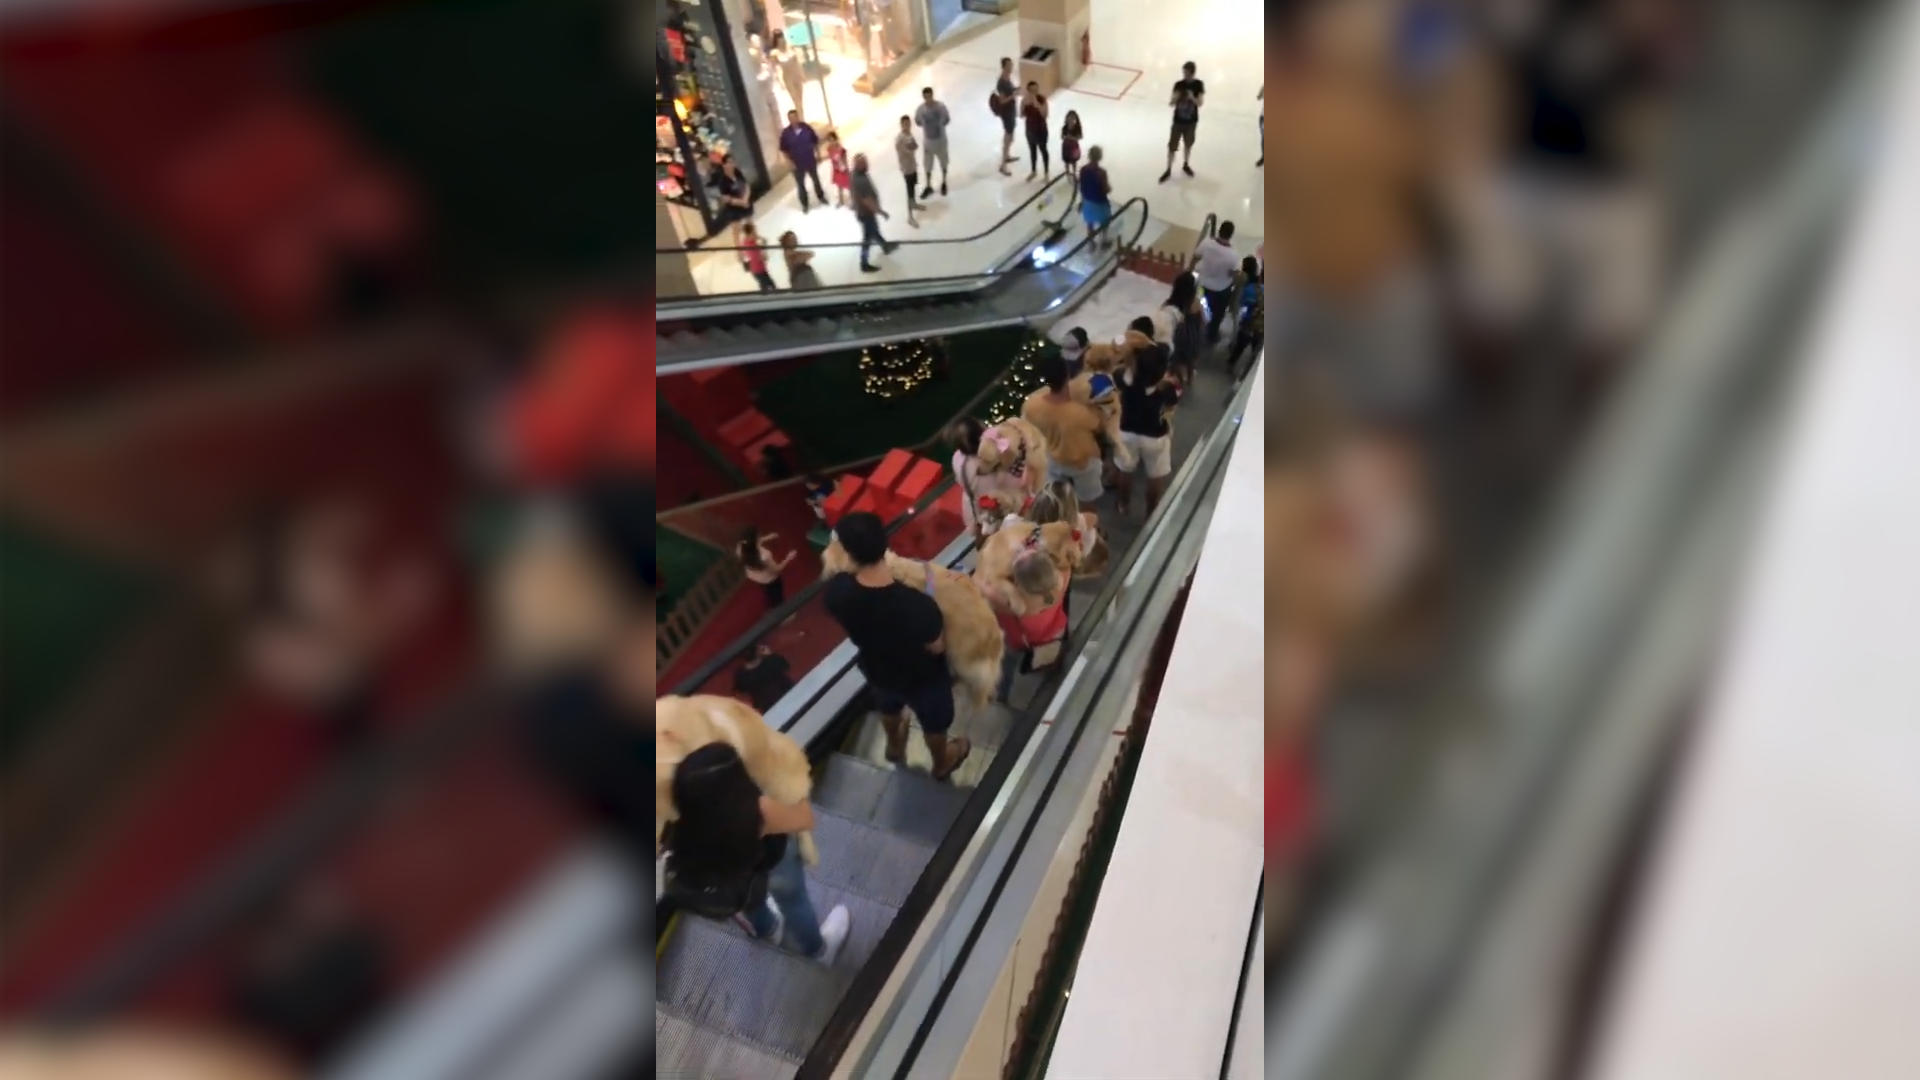 Golden retriever owners take dogs to mall